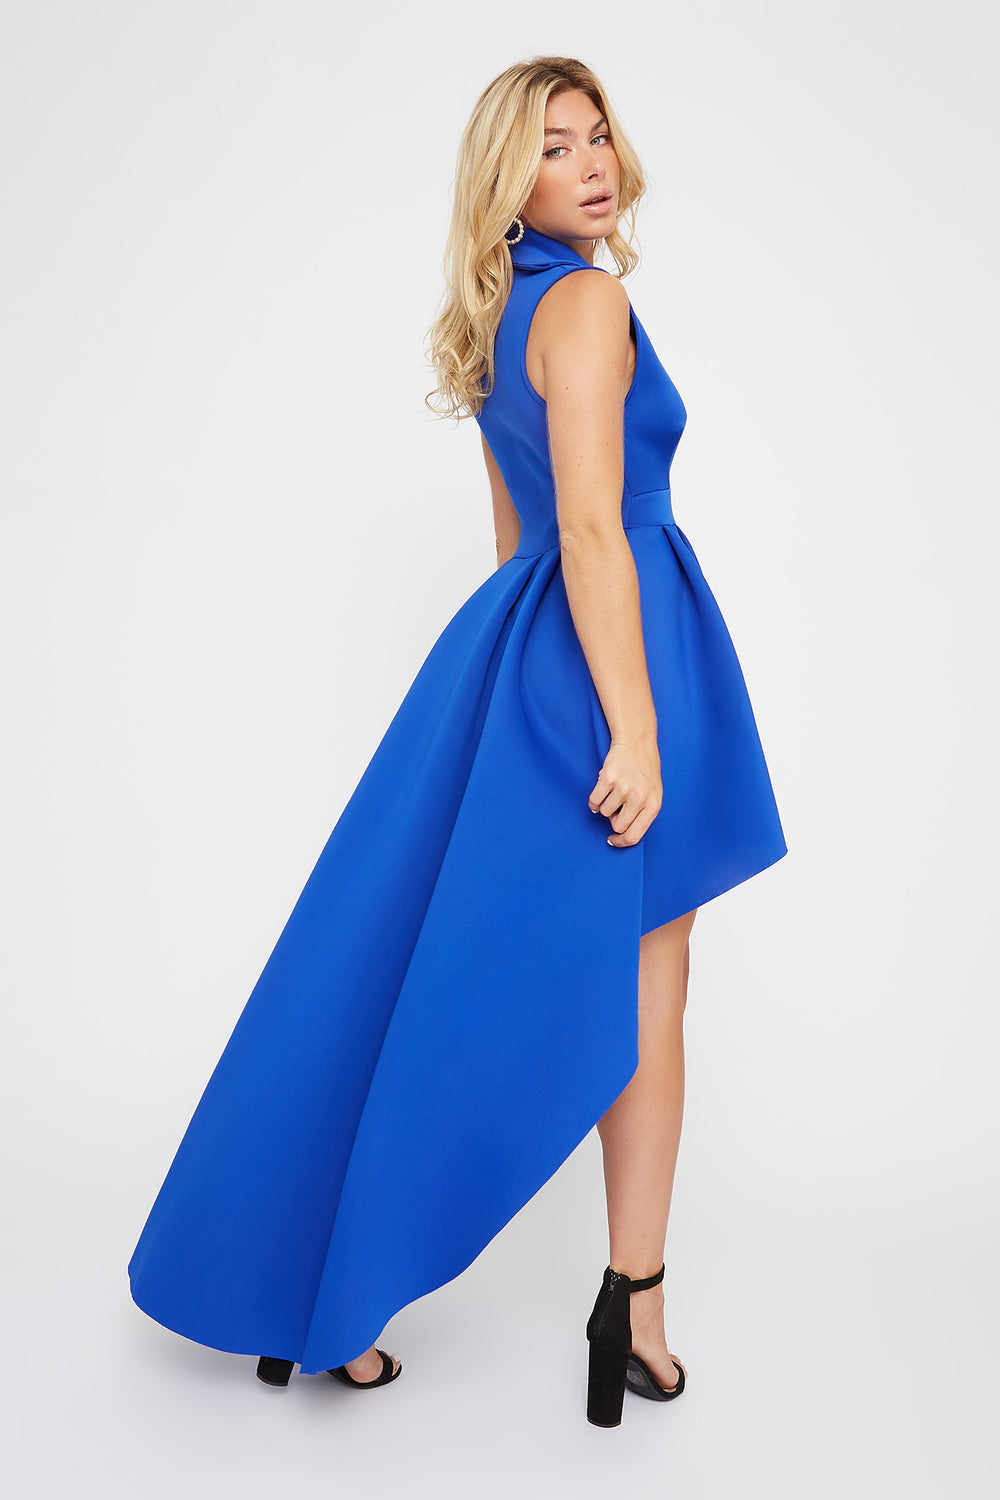 Plunging Collar Sleeveless High-Low Dress Royal Blue